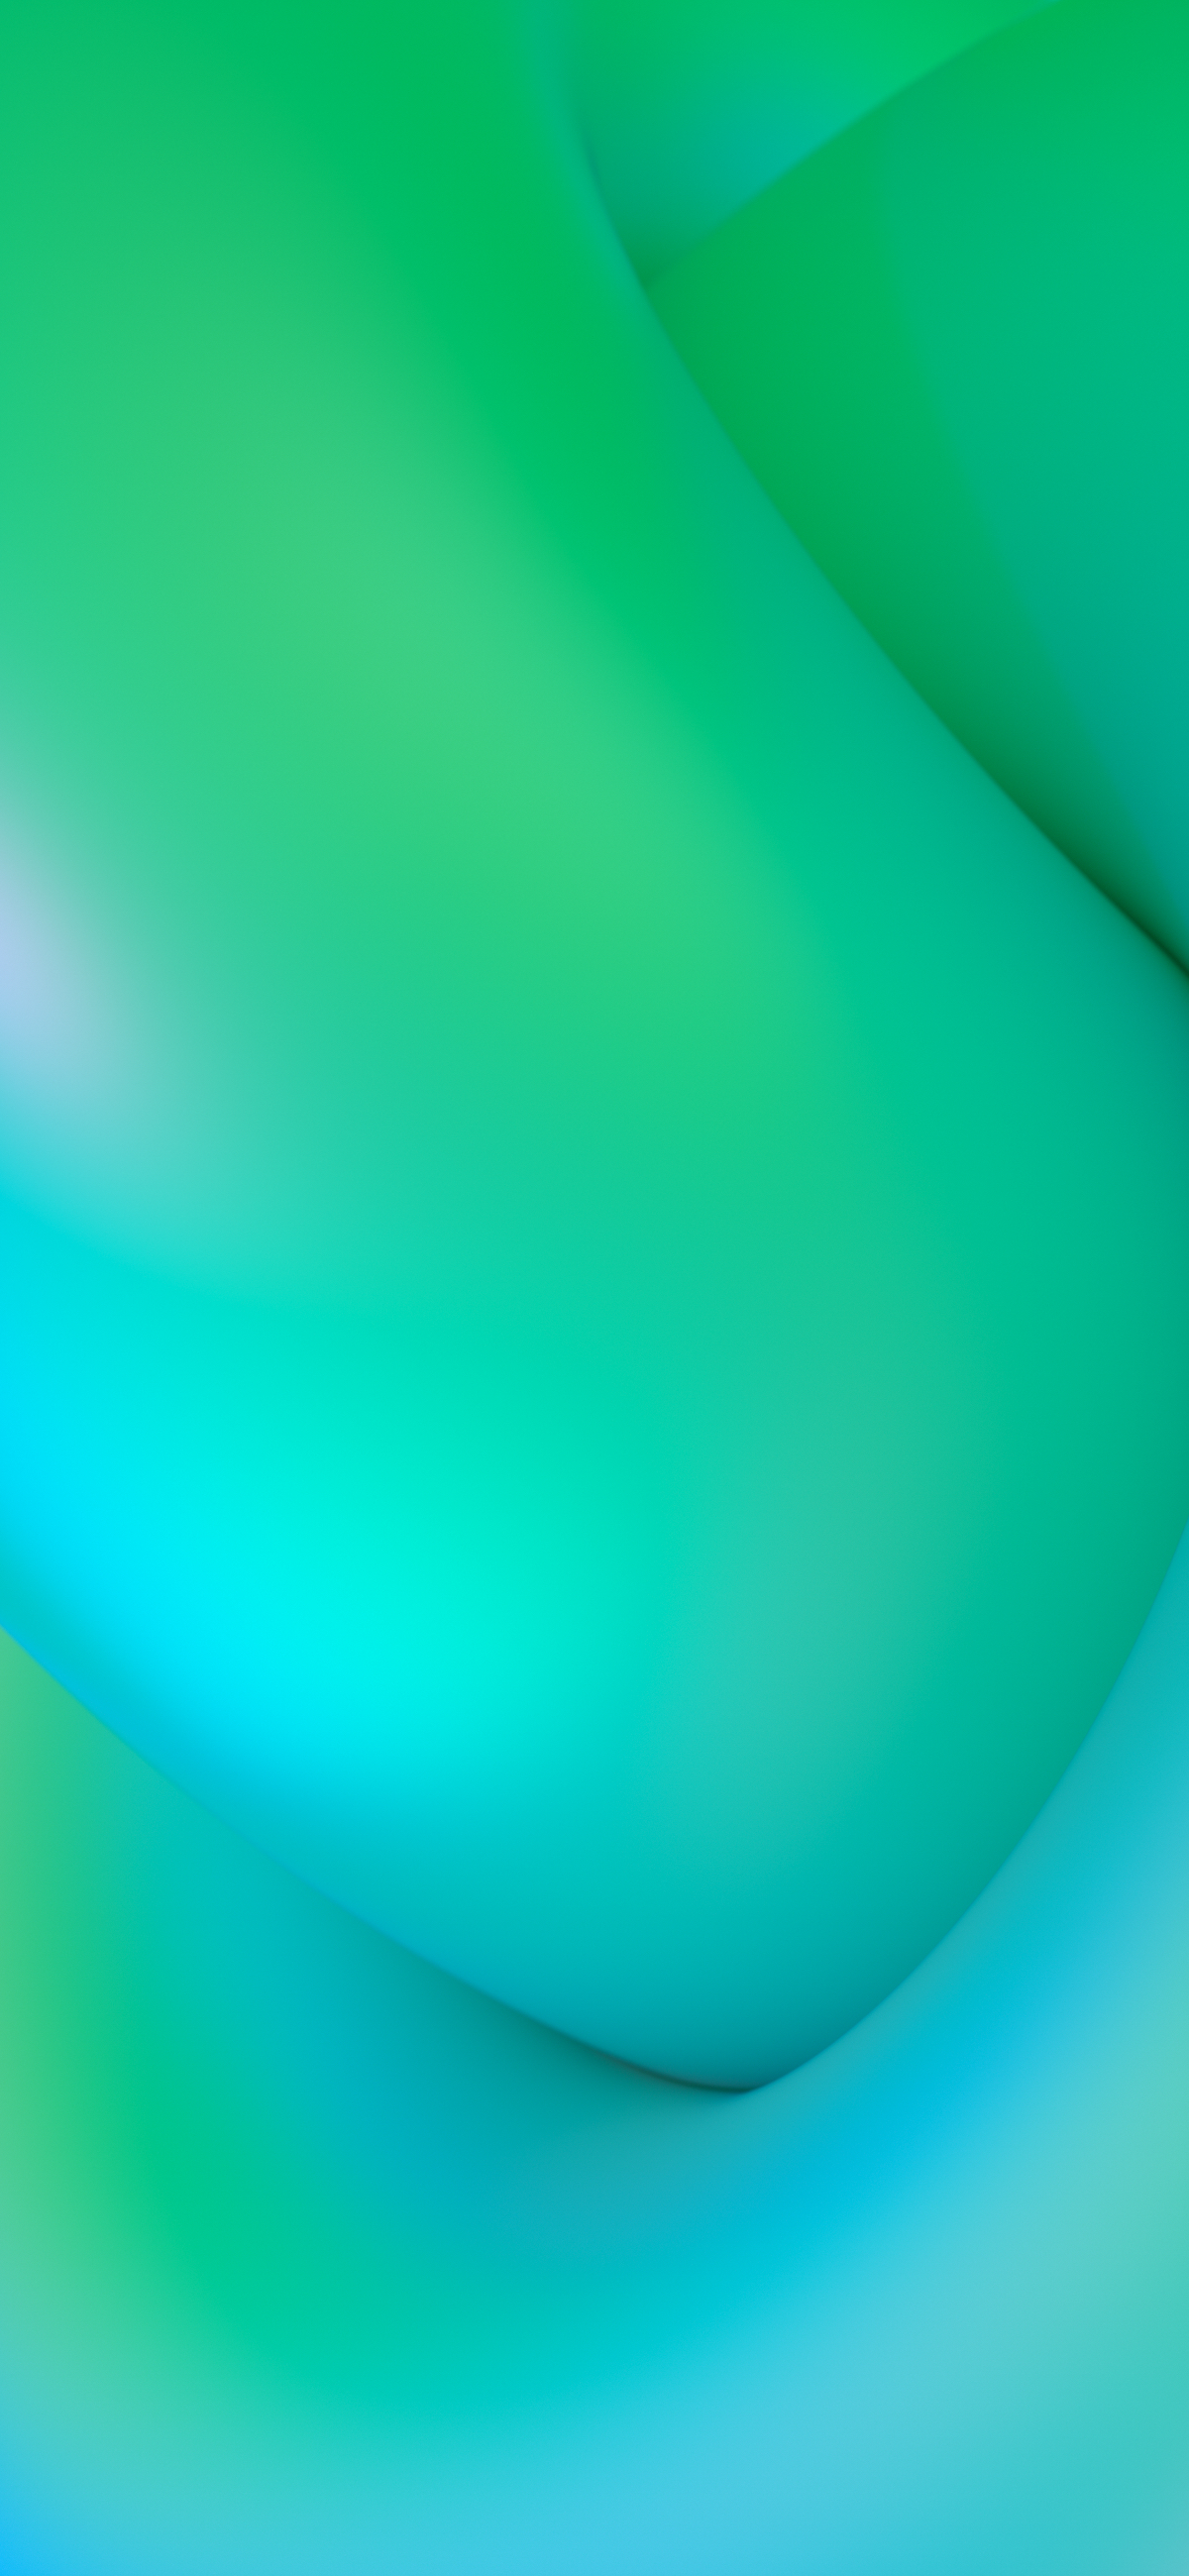 Abstract Iphone Wallpapers Created By Facebook S Design Team